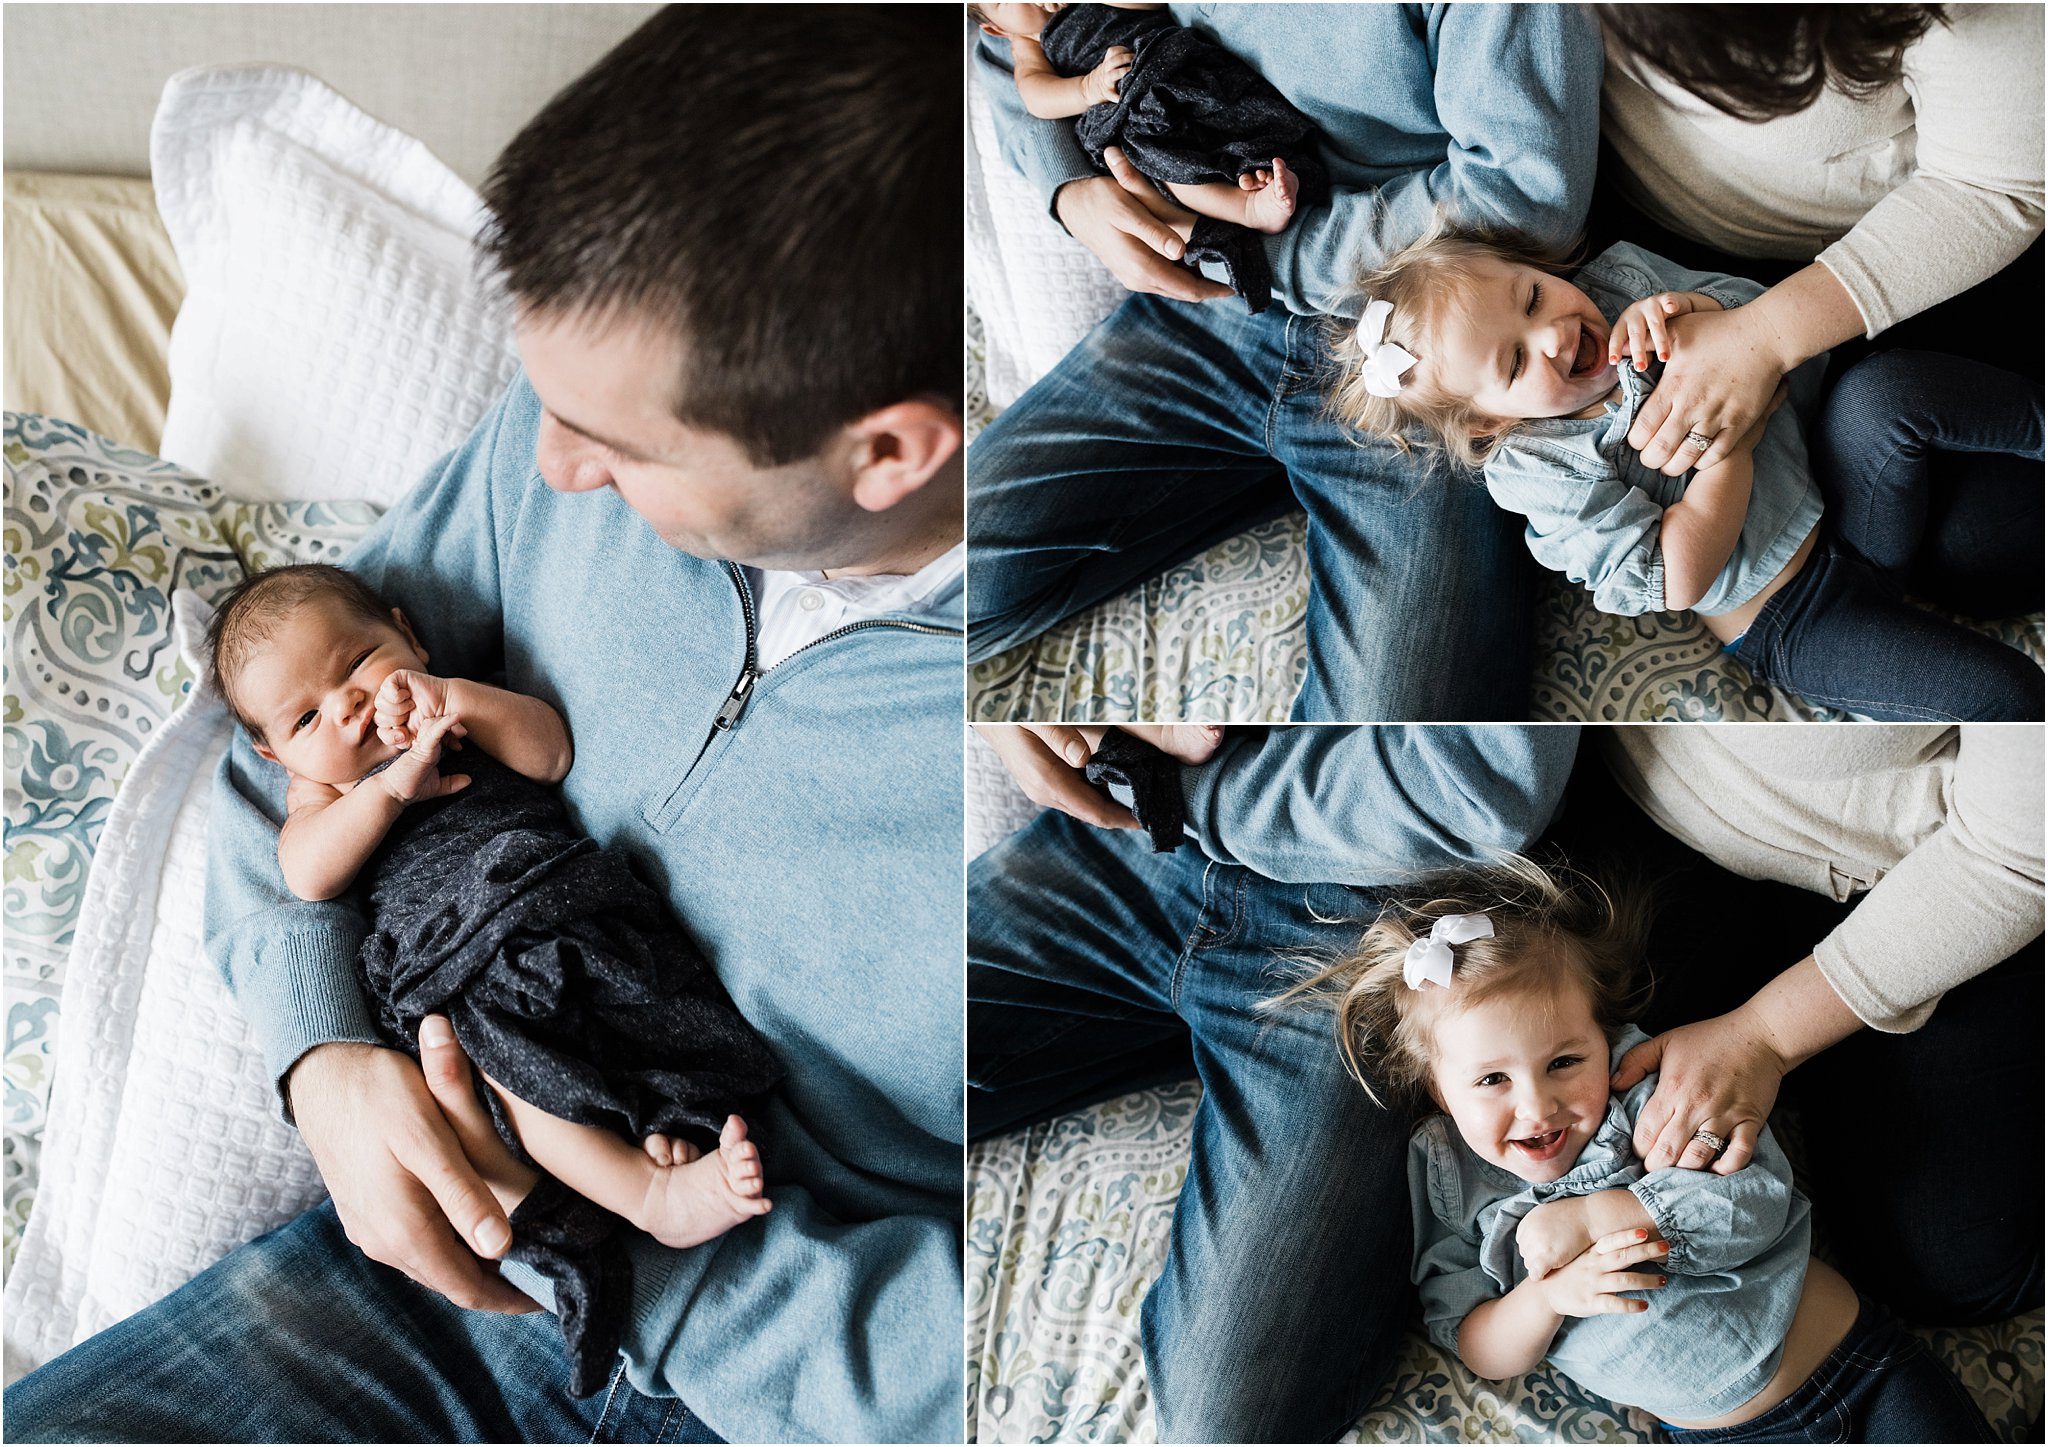 parents holding children on bed during newborn photo session